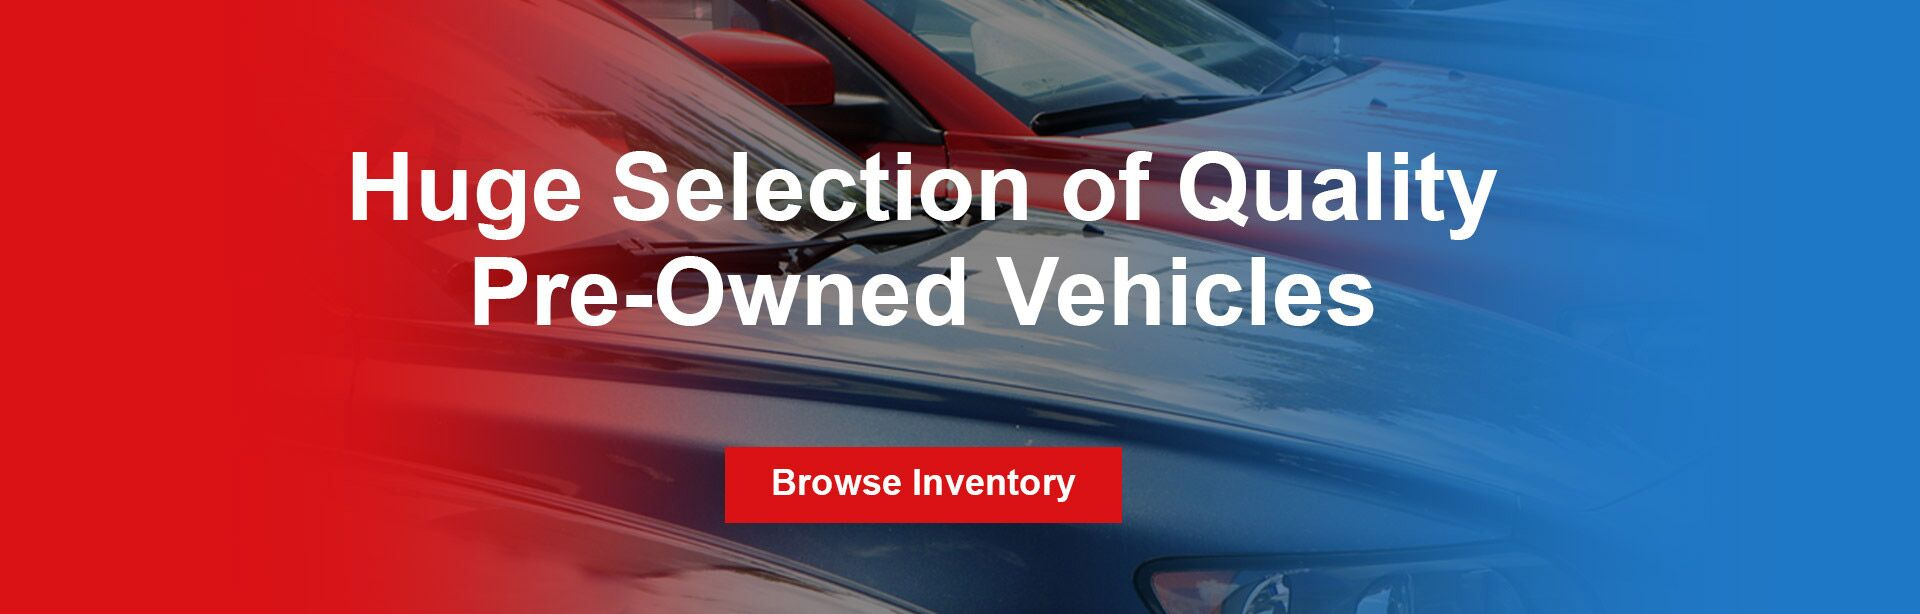 quality-pre-owned-vehicles-revised